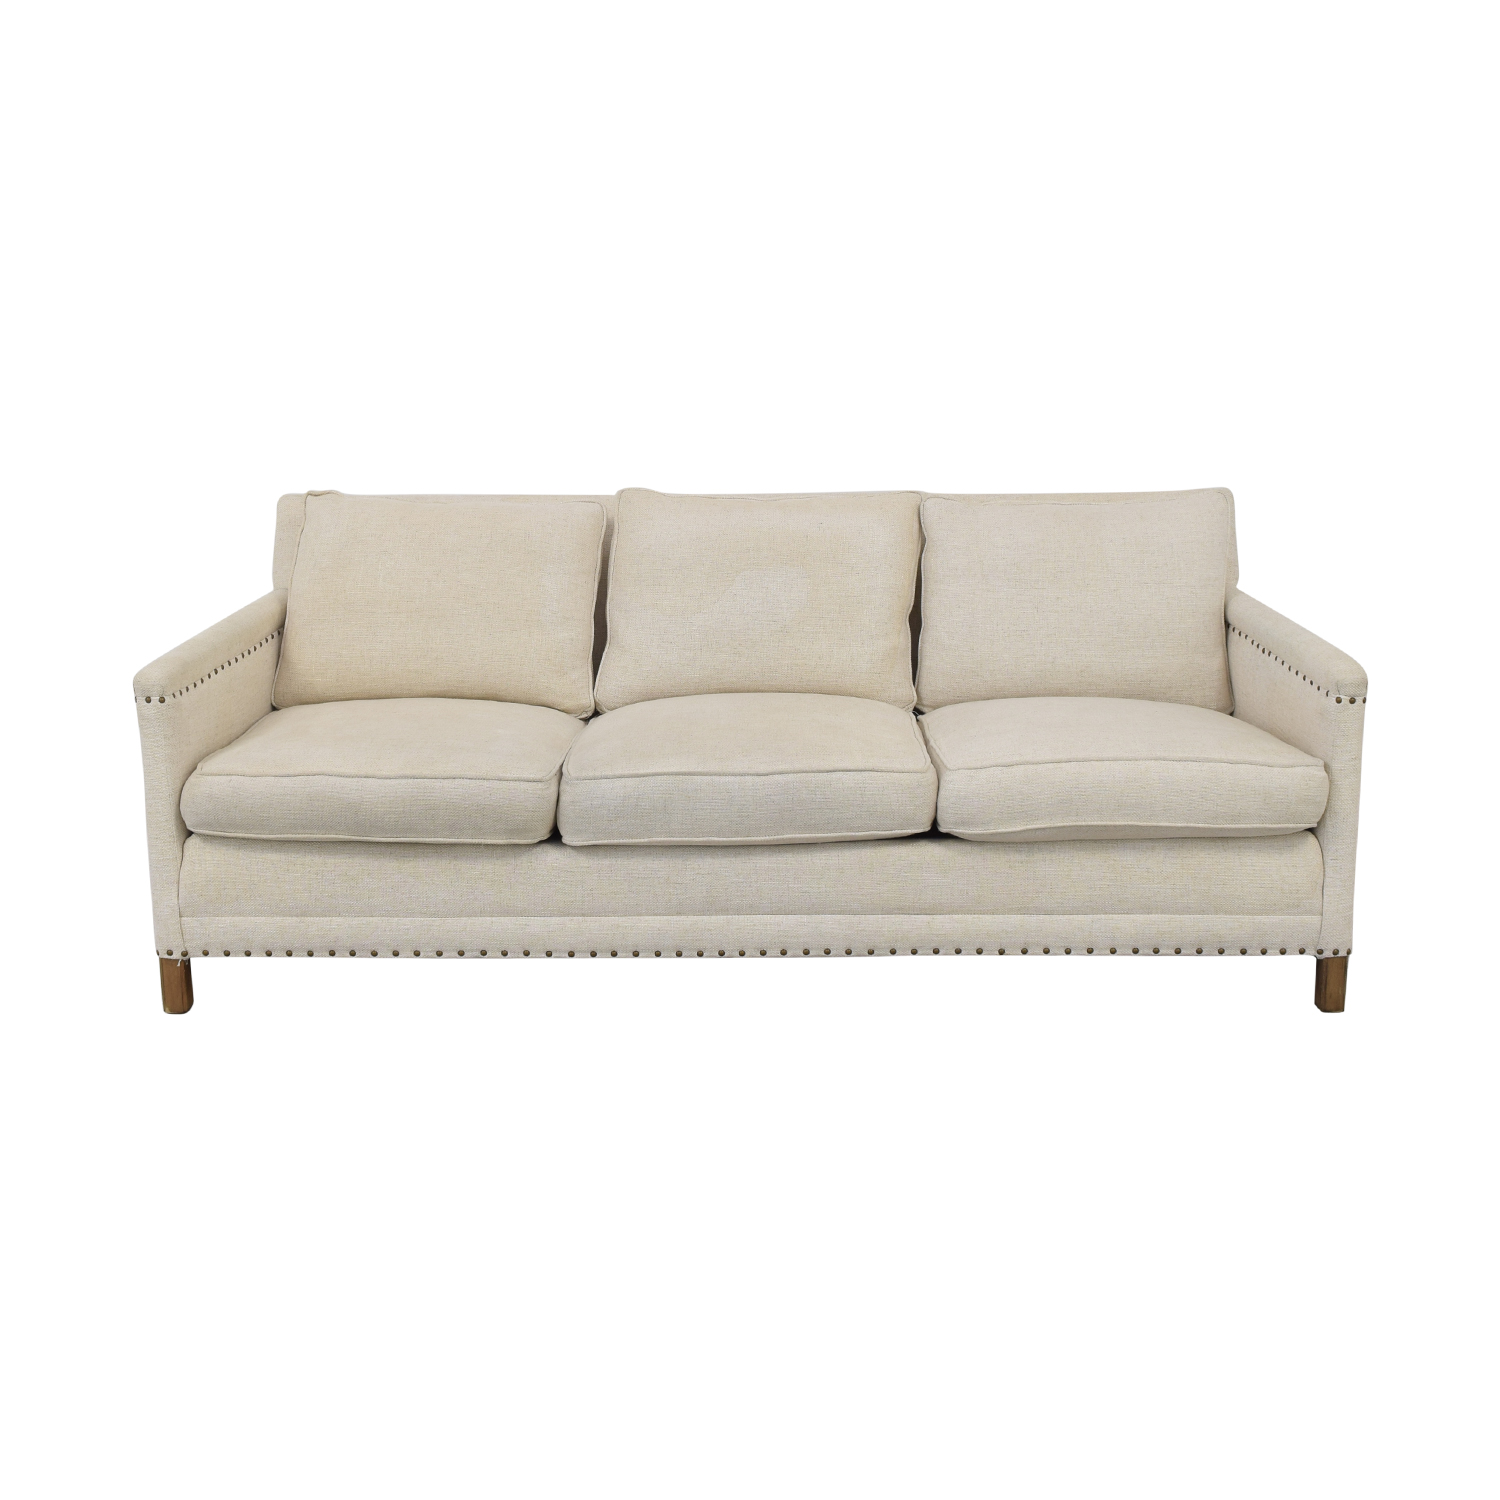 Crate & Barrel Crate & Barrel Trevor Apartment Sofa in Oatmeal discount